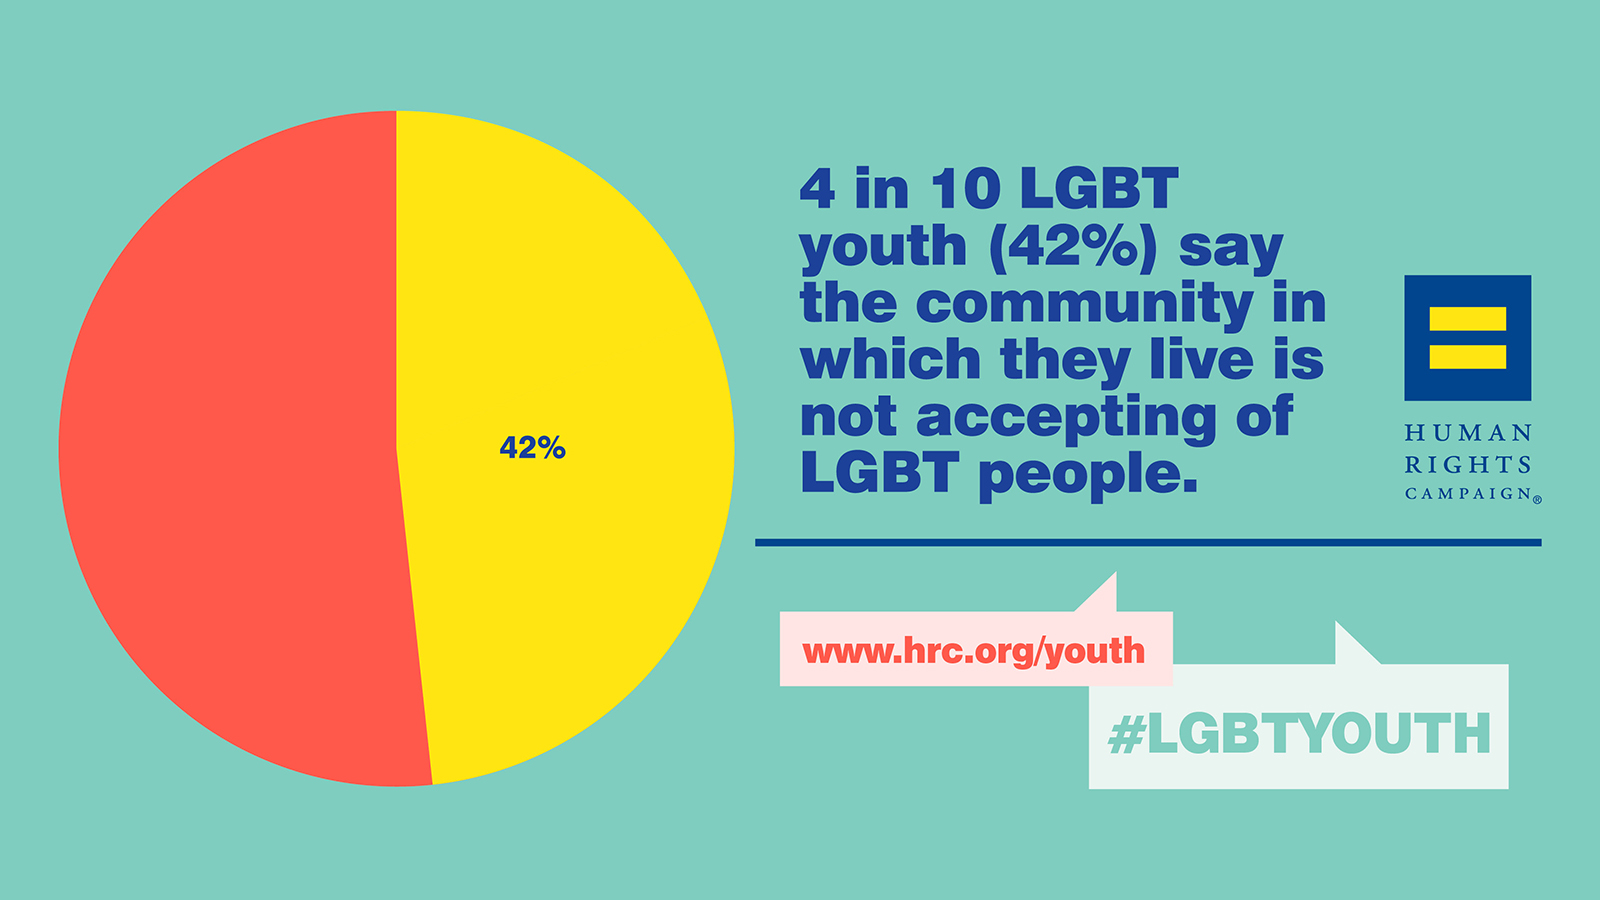 Source: Human Rights Campaign (hrc.org/youth)